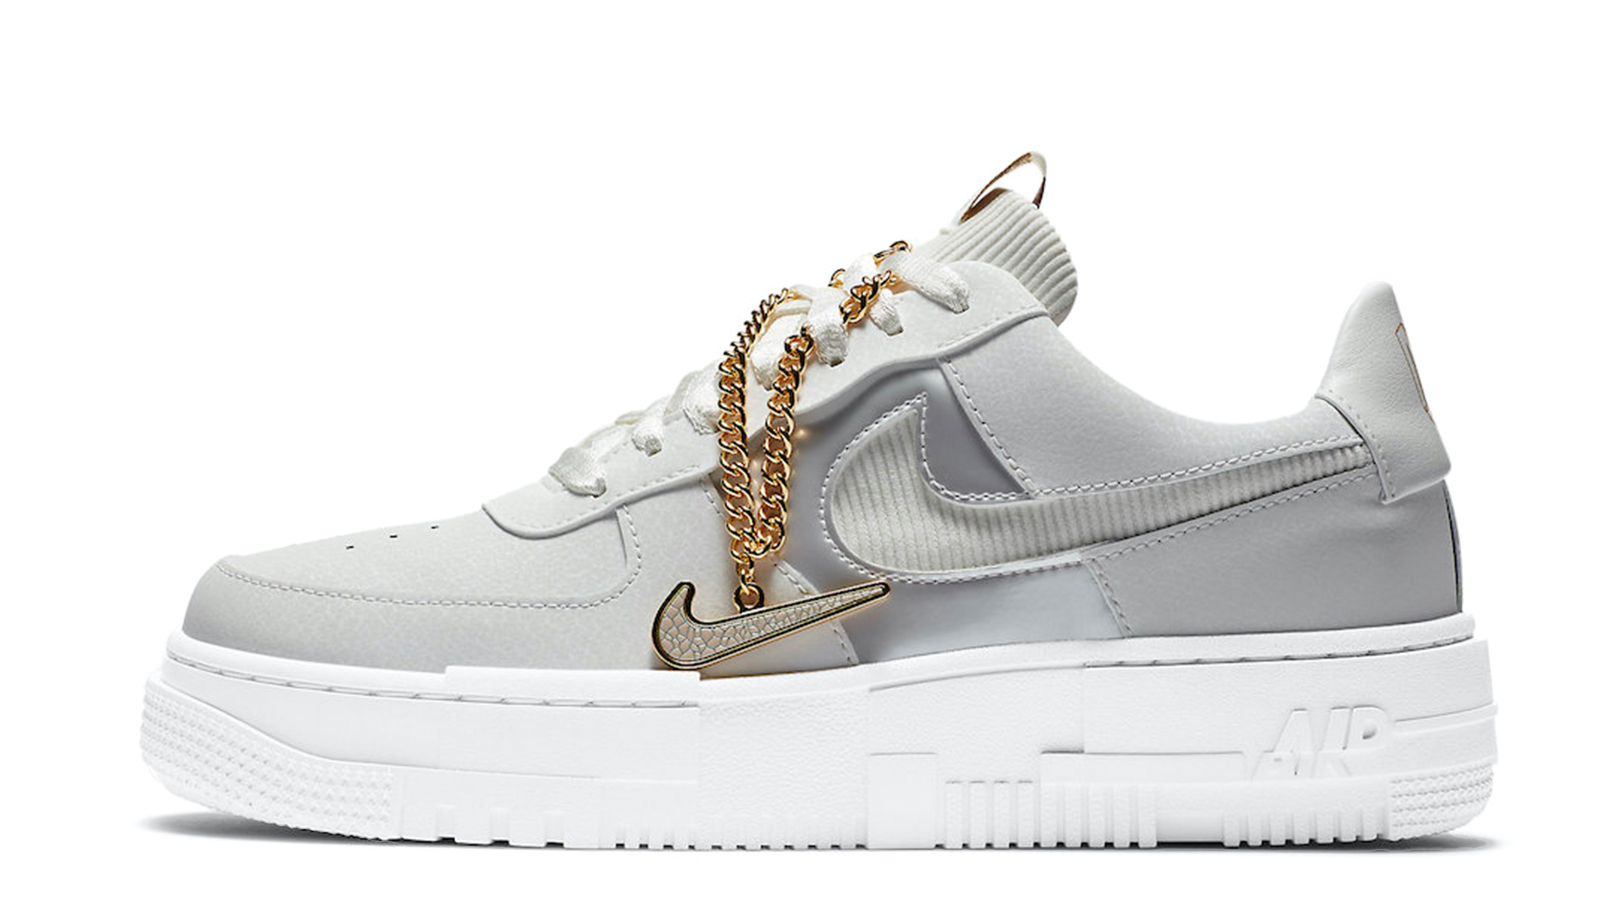 Nike Air Force 1 Pixel Grey Gold Chain DC1160-100